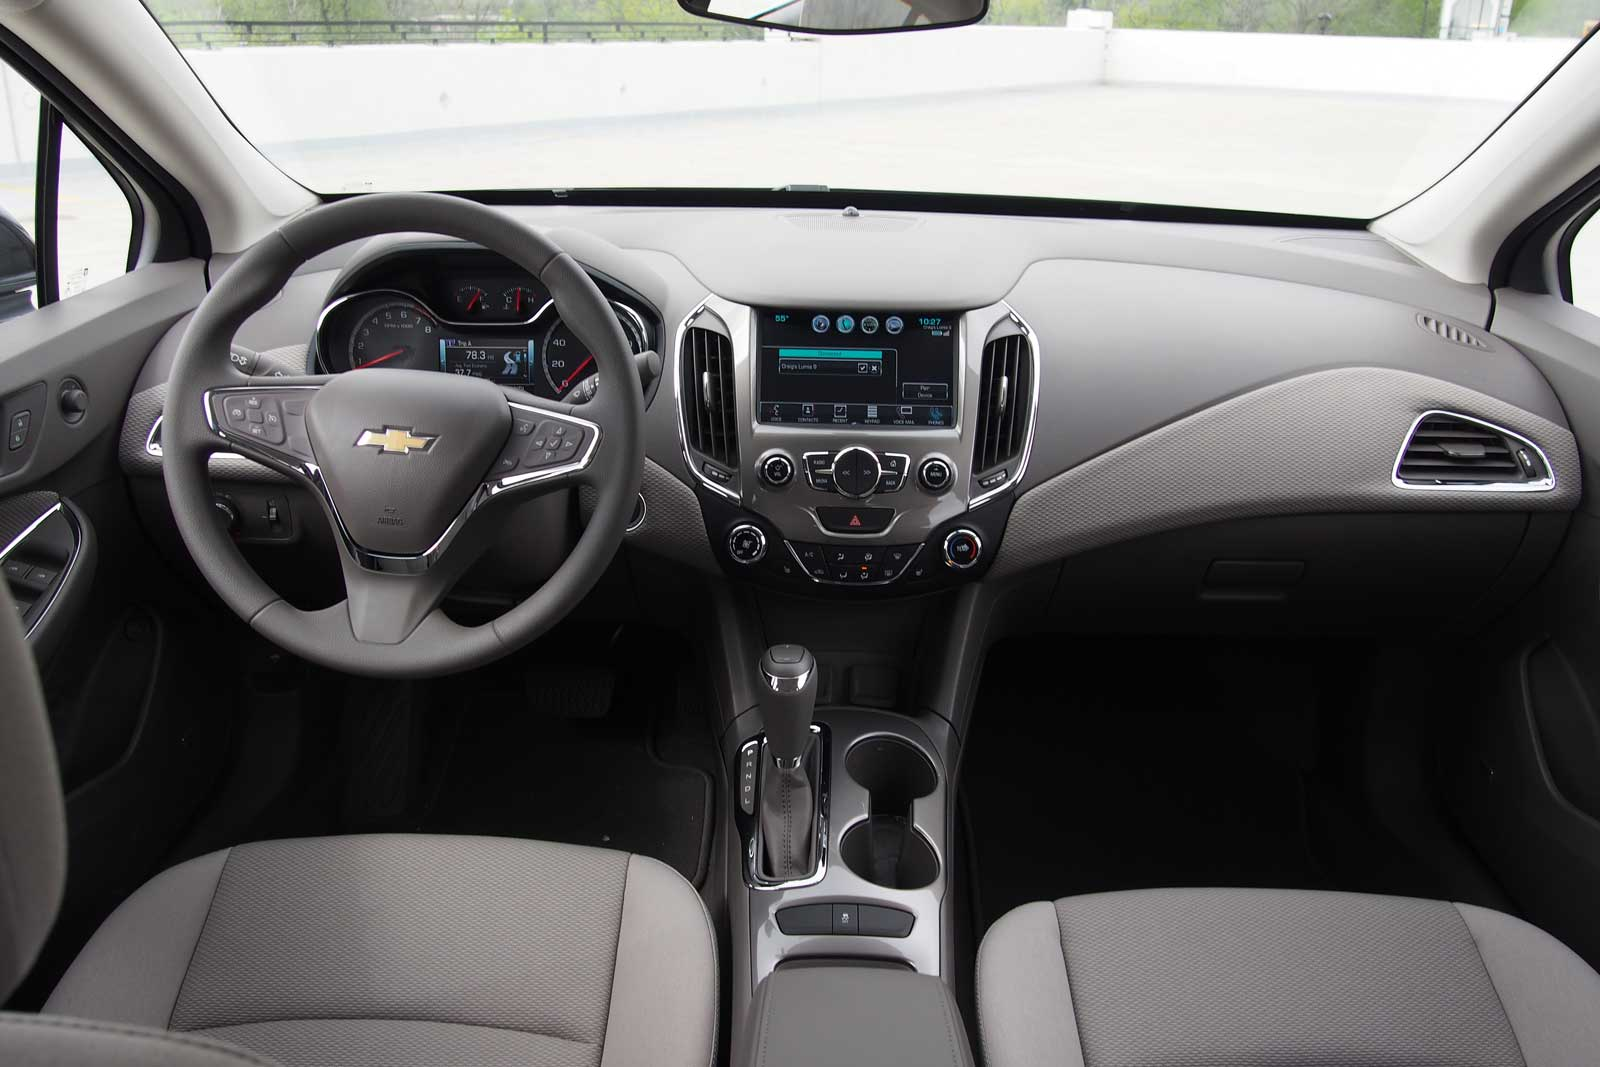 High Quality ... 2016 Chevrolet Cruze LT Interior 04 ... Awesome Ideas